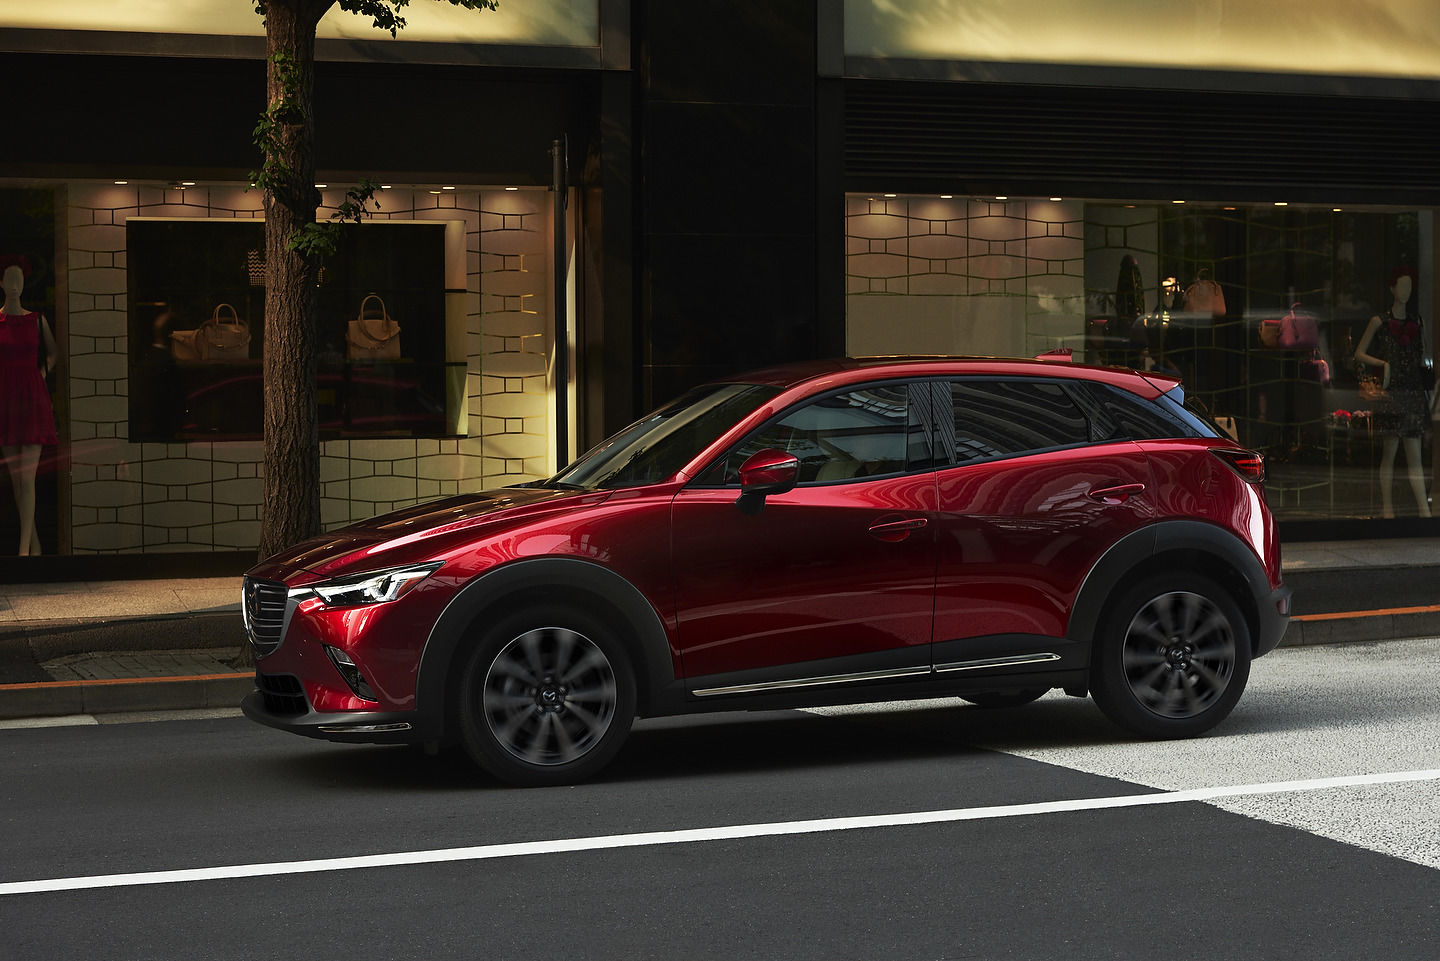 Three Things You Need to Know About the Mazda CX-3